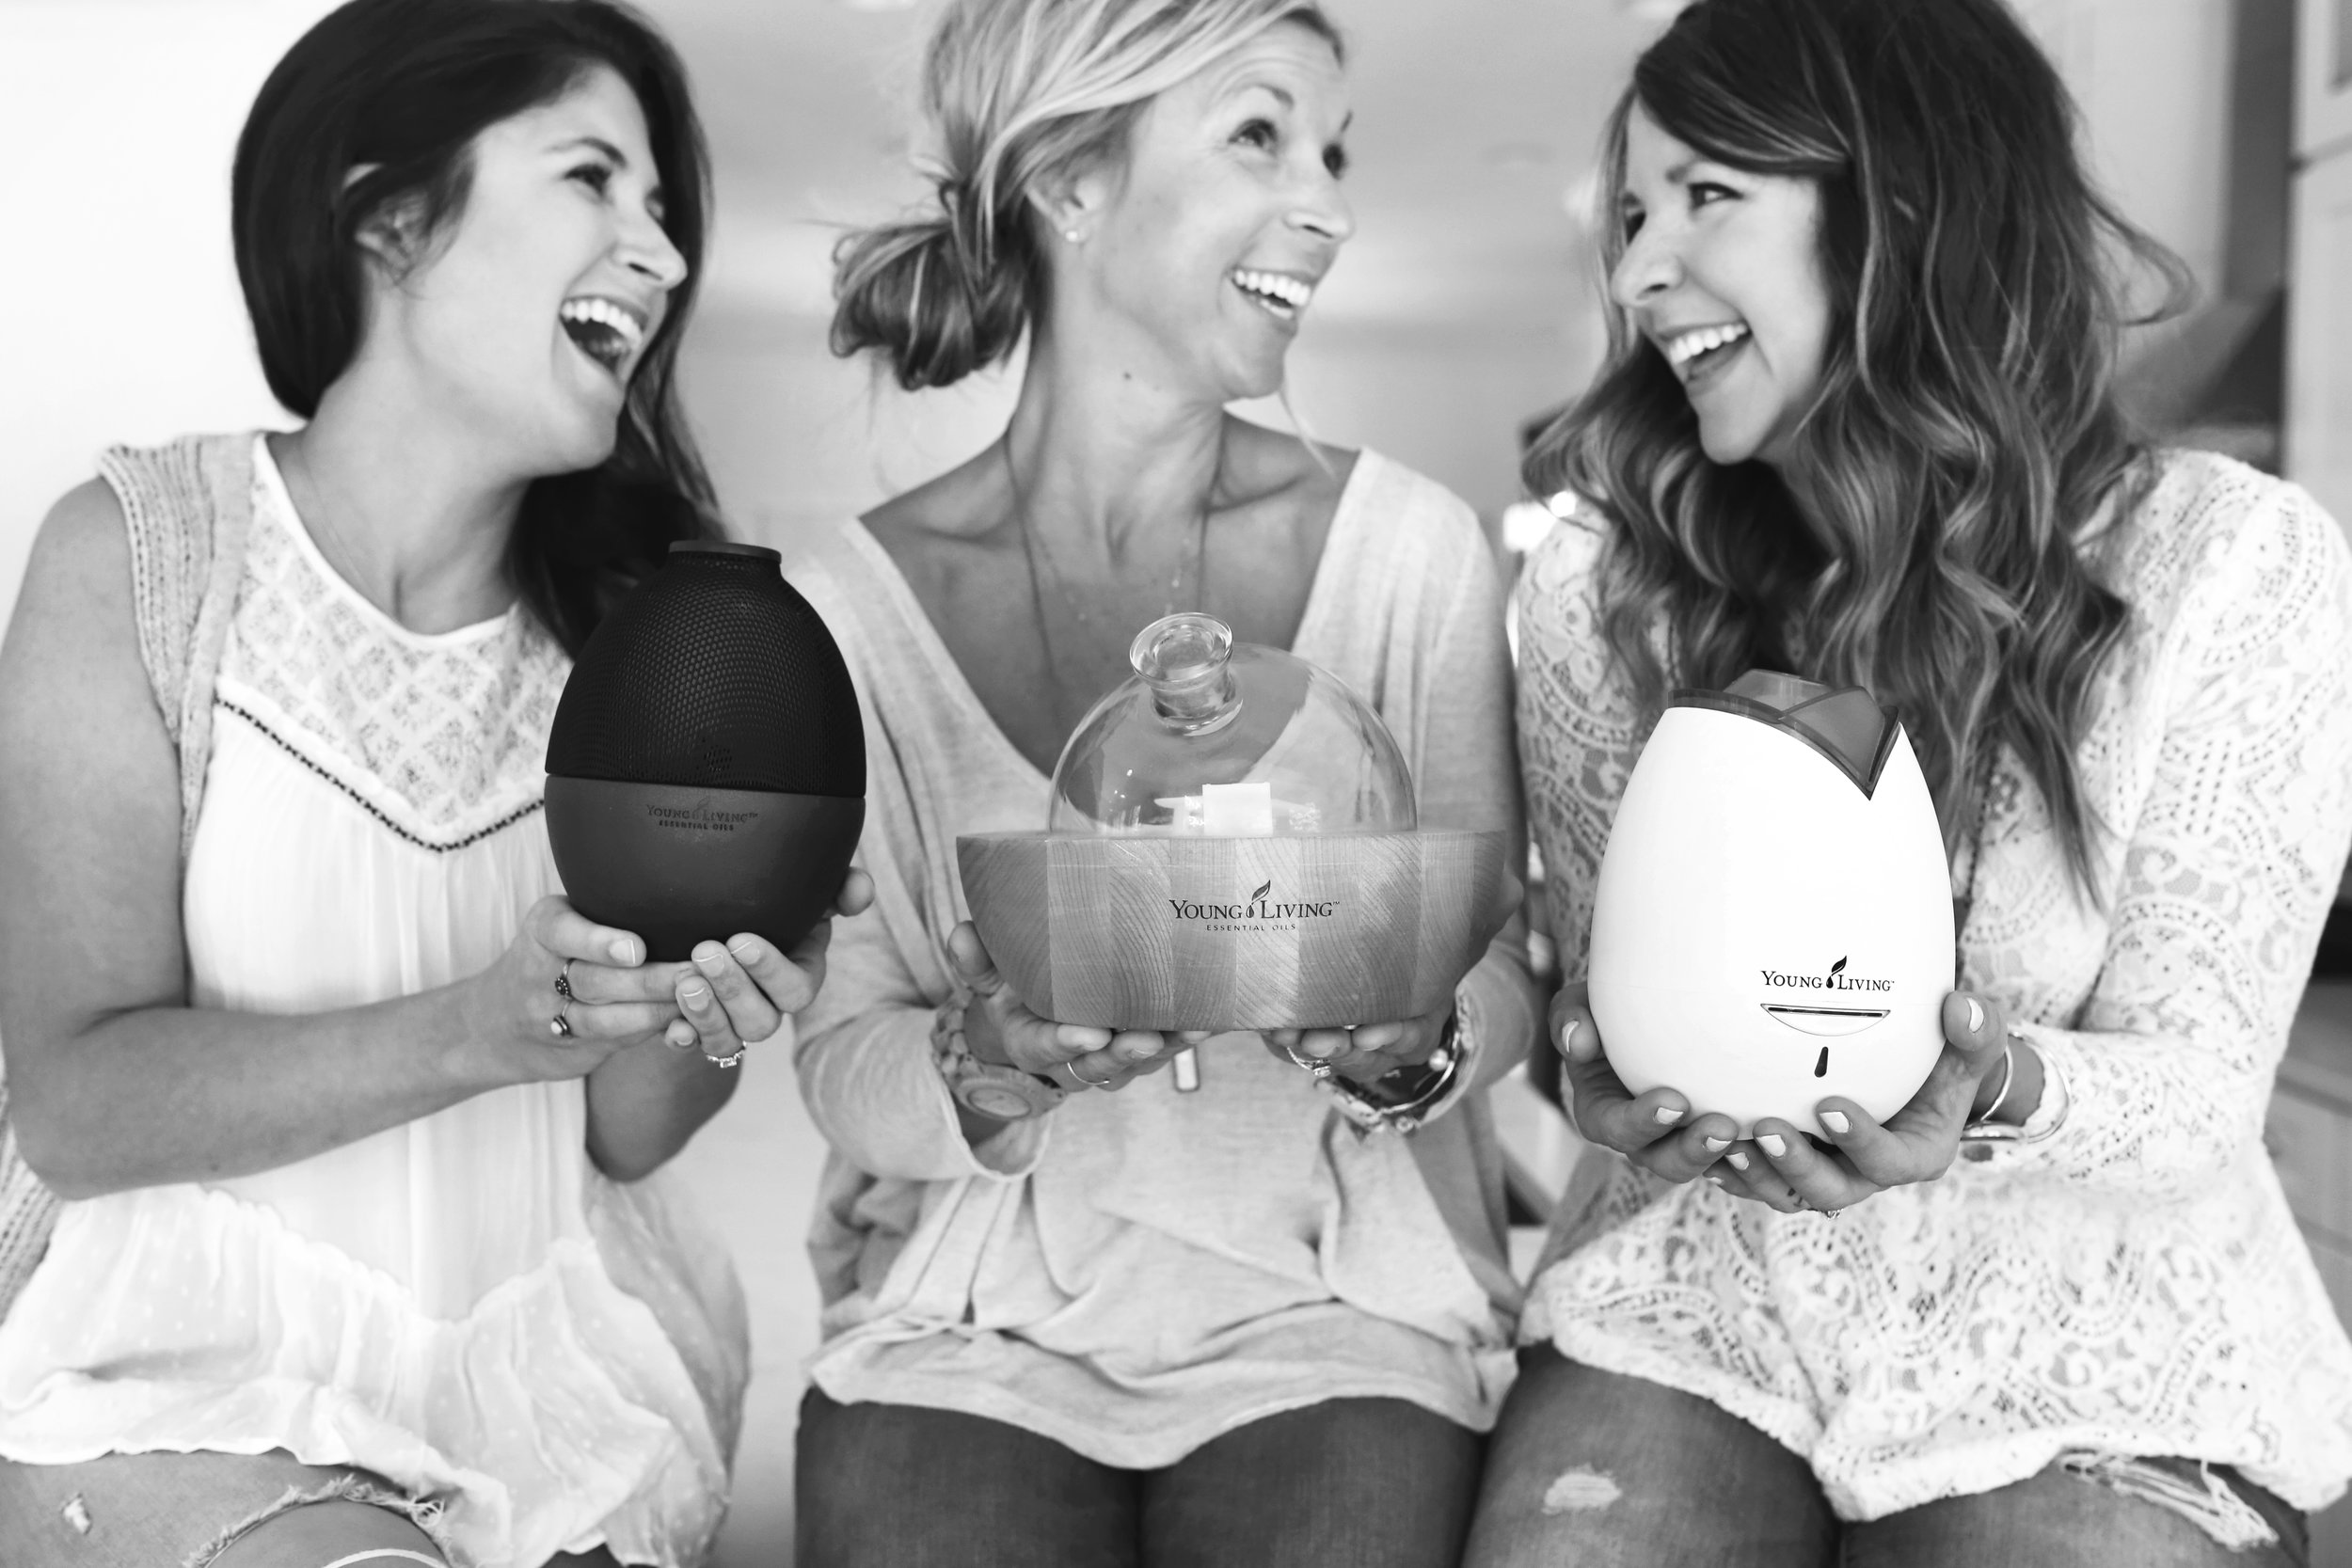 - Oil + Co. was founded in 2016 by Brooke Thrasher, Nikki Haas and Annie Farrar. Three moms with a passion to make a difference in their homes and in the lives around them.